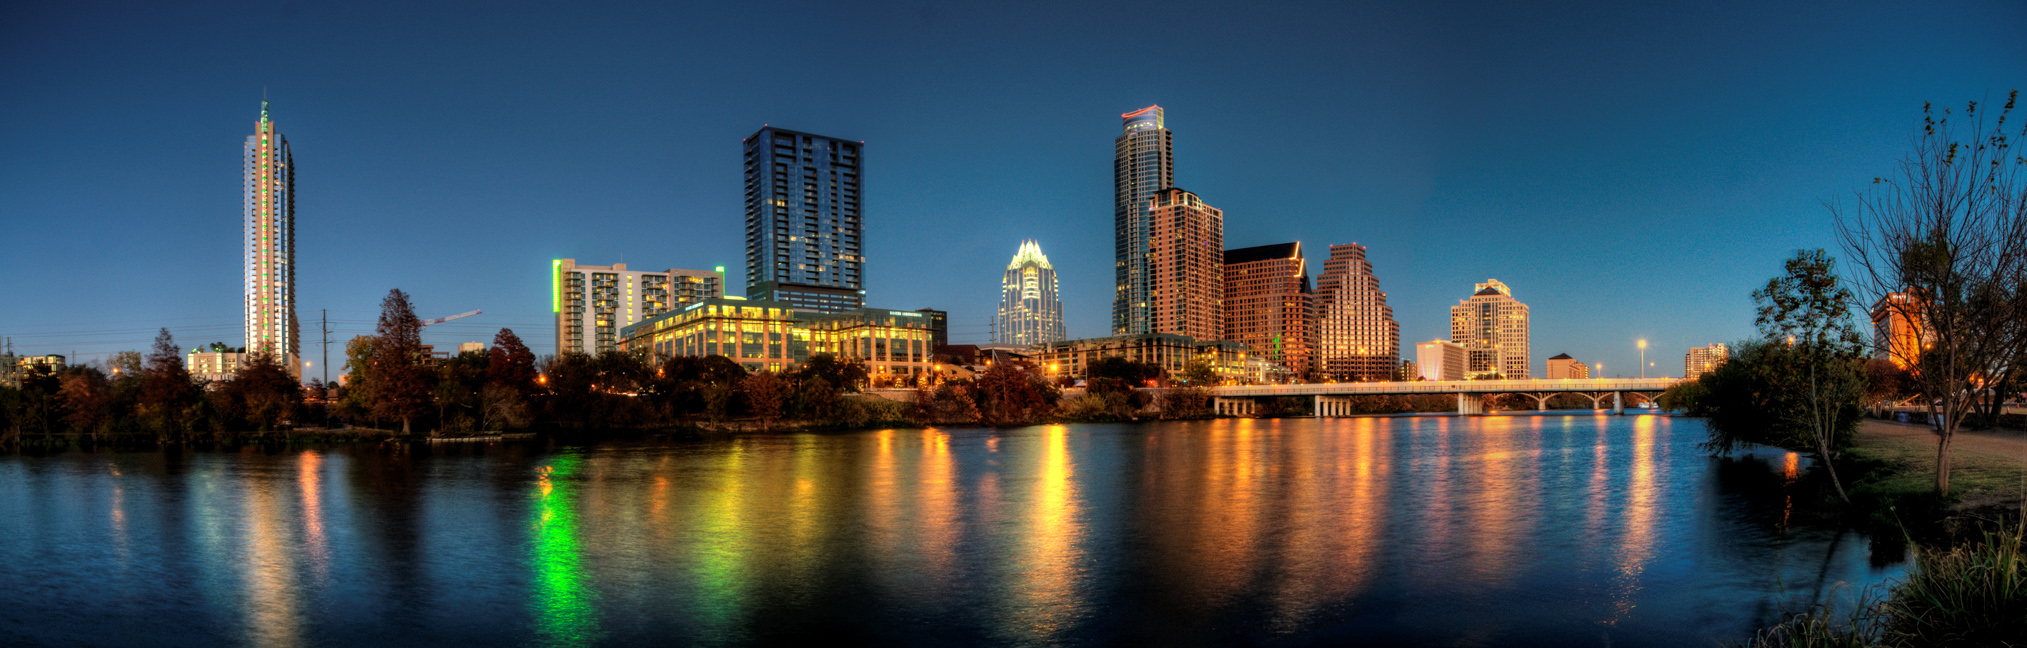 Austin Skyline at Dusk by George Miquilena